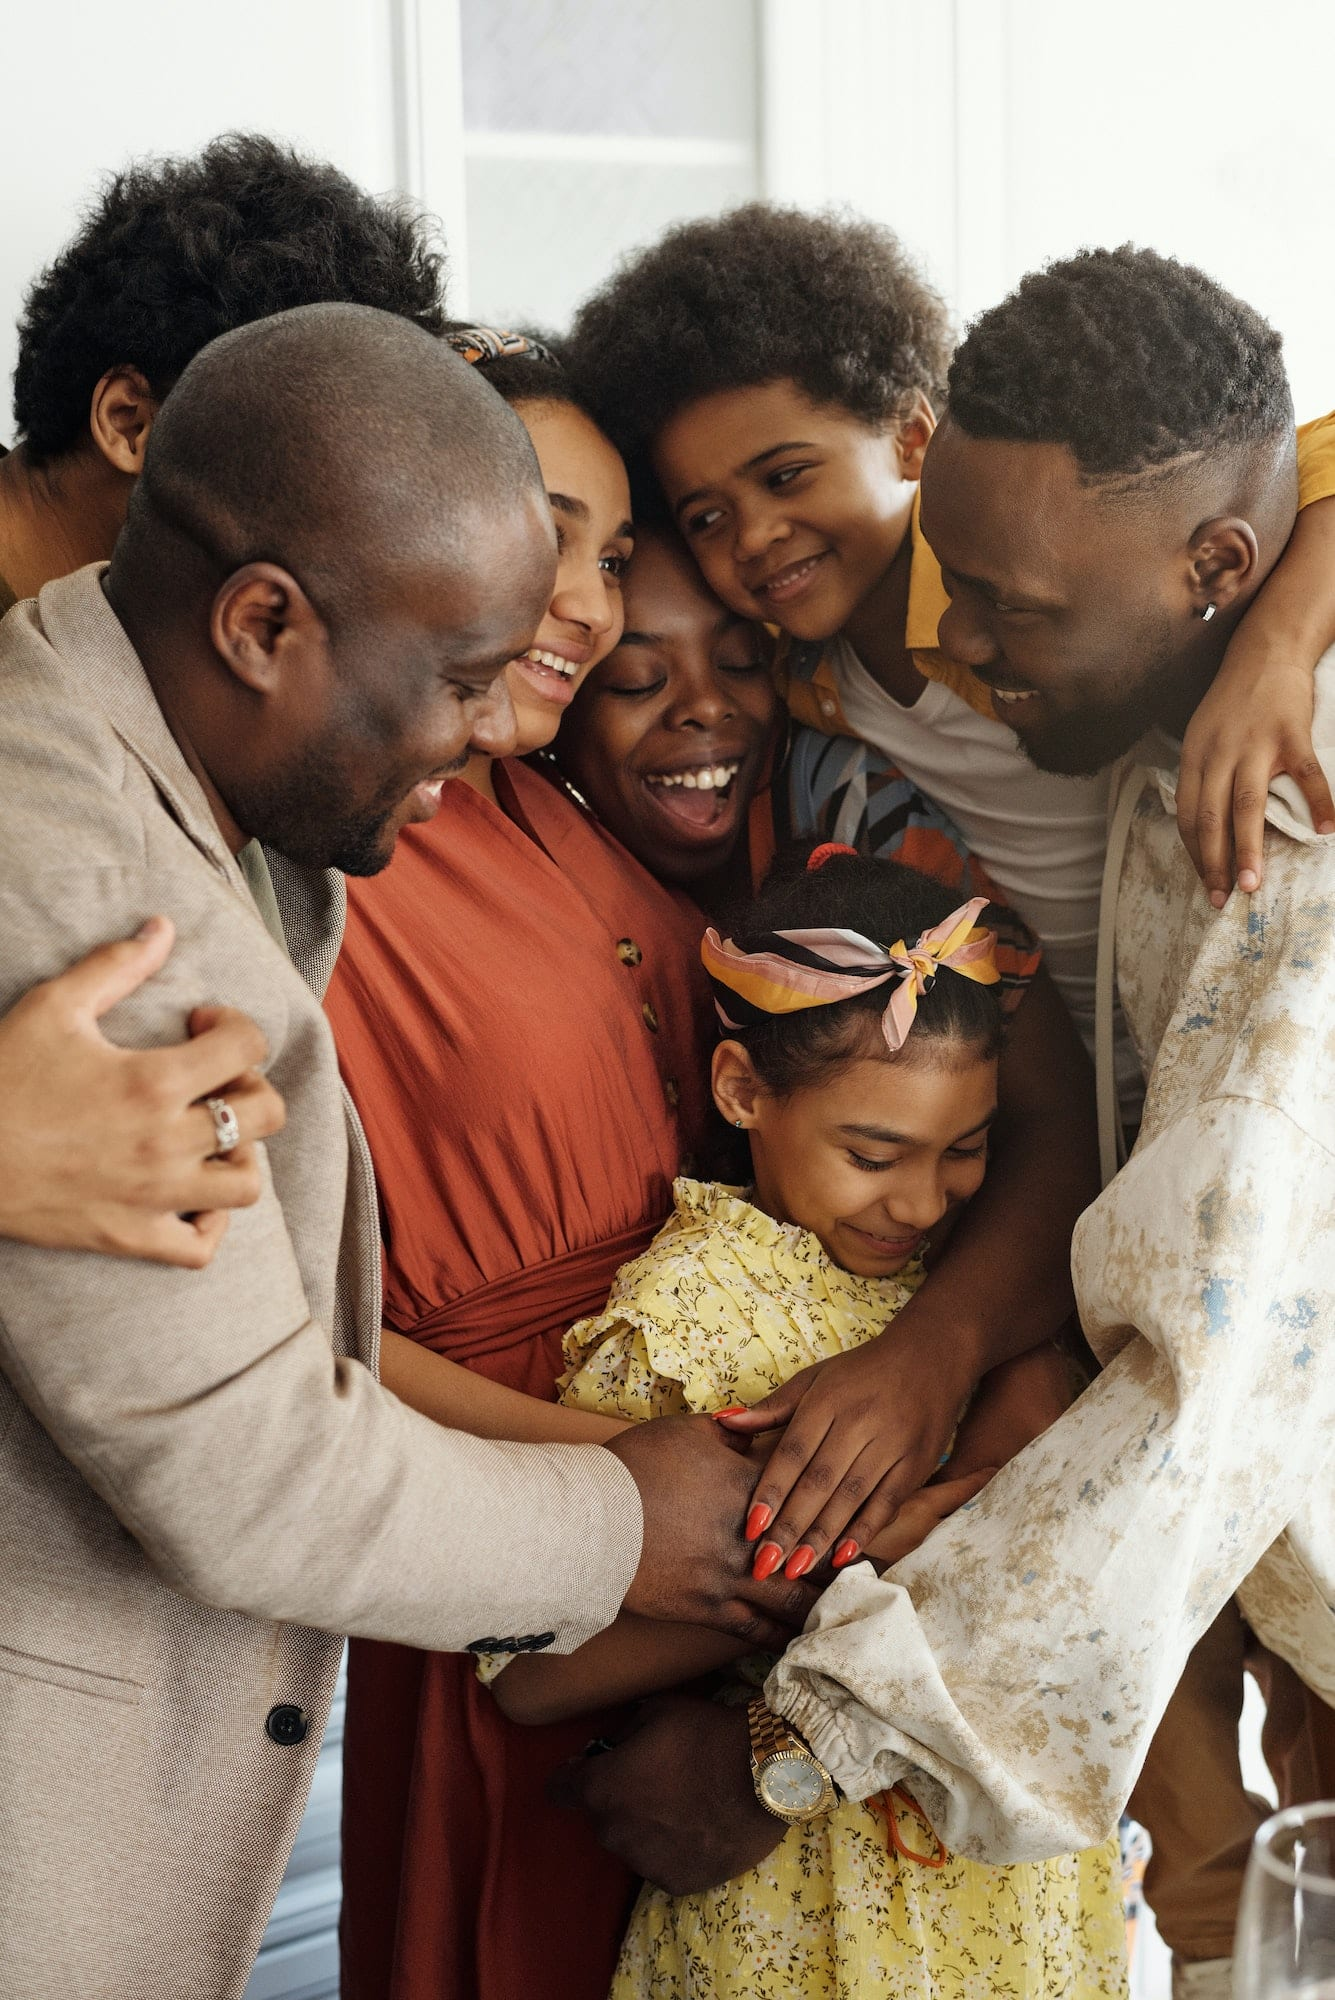 Photo of a family hugging each other